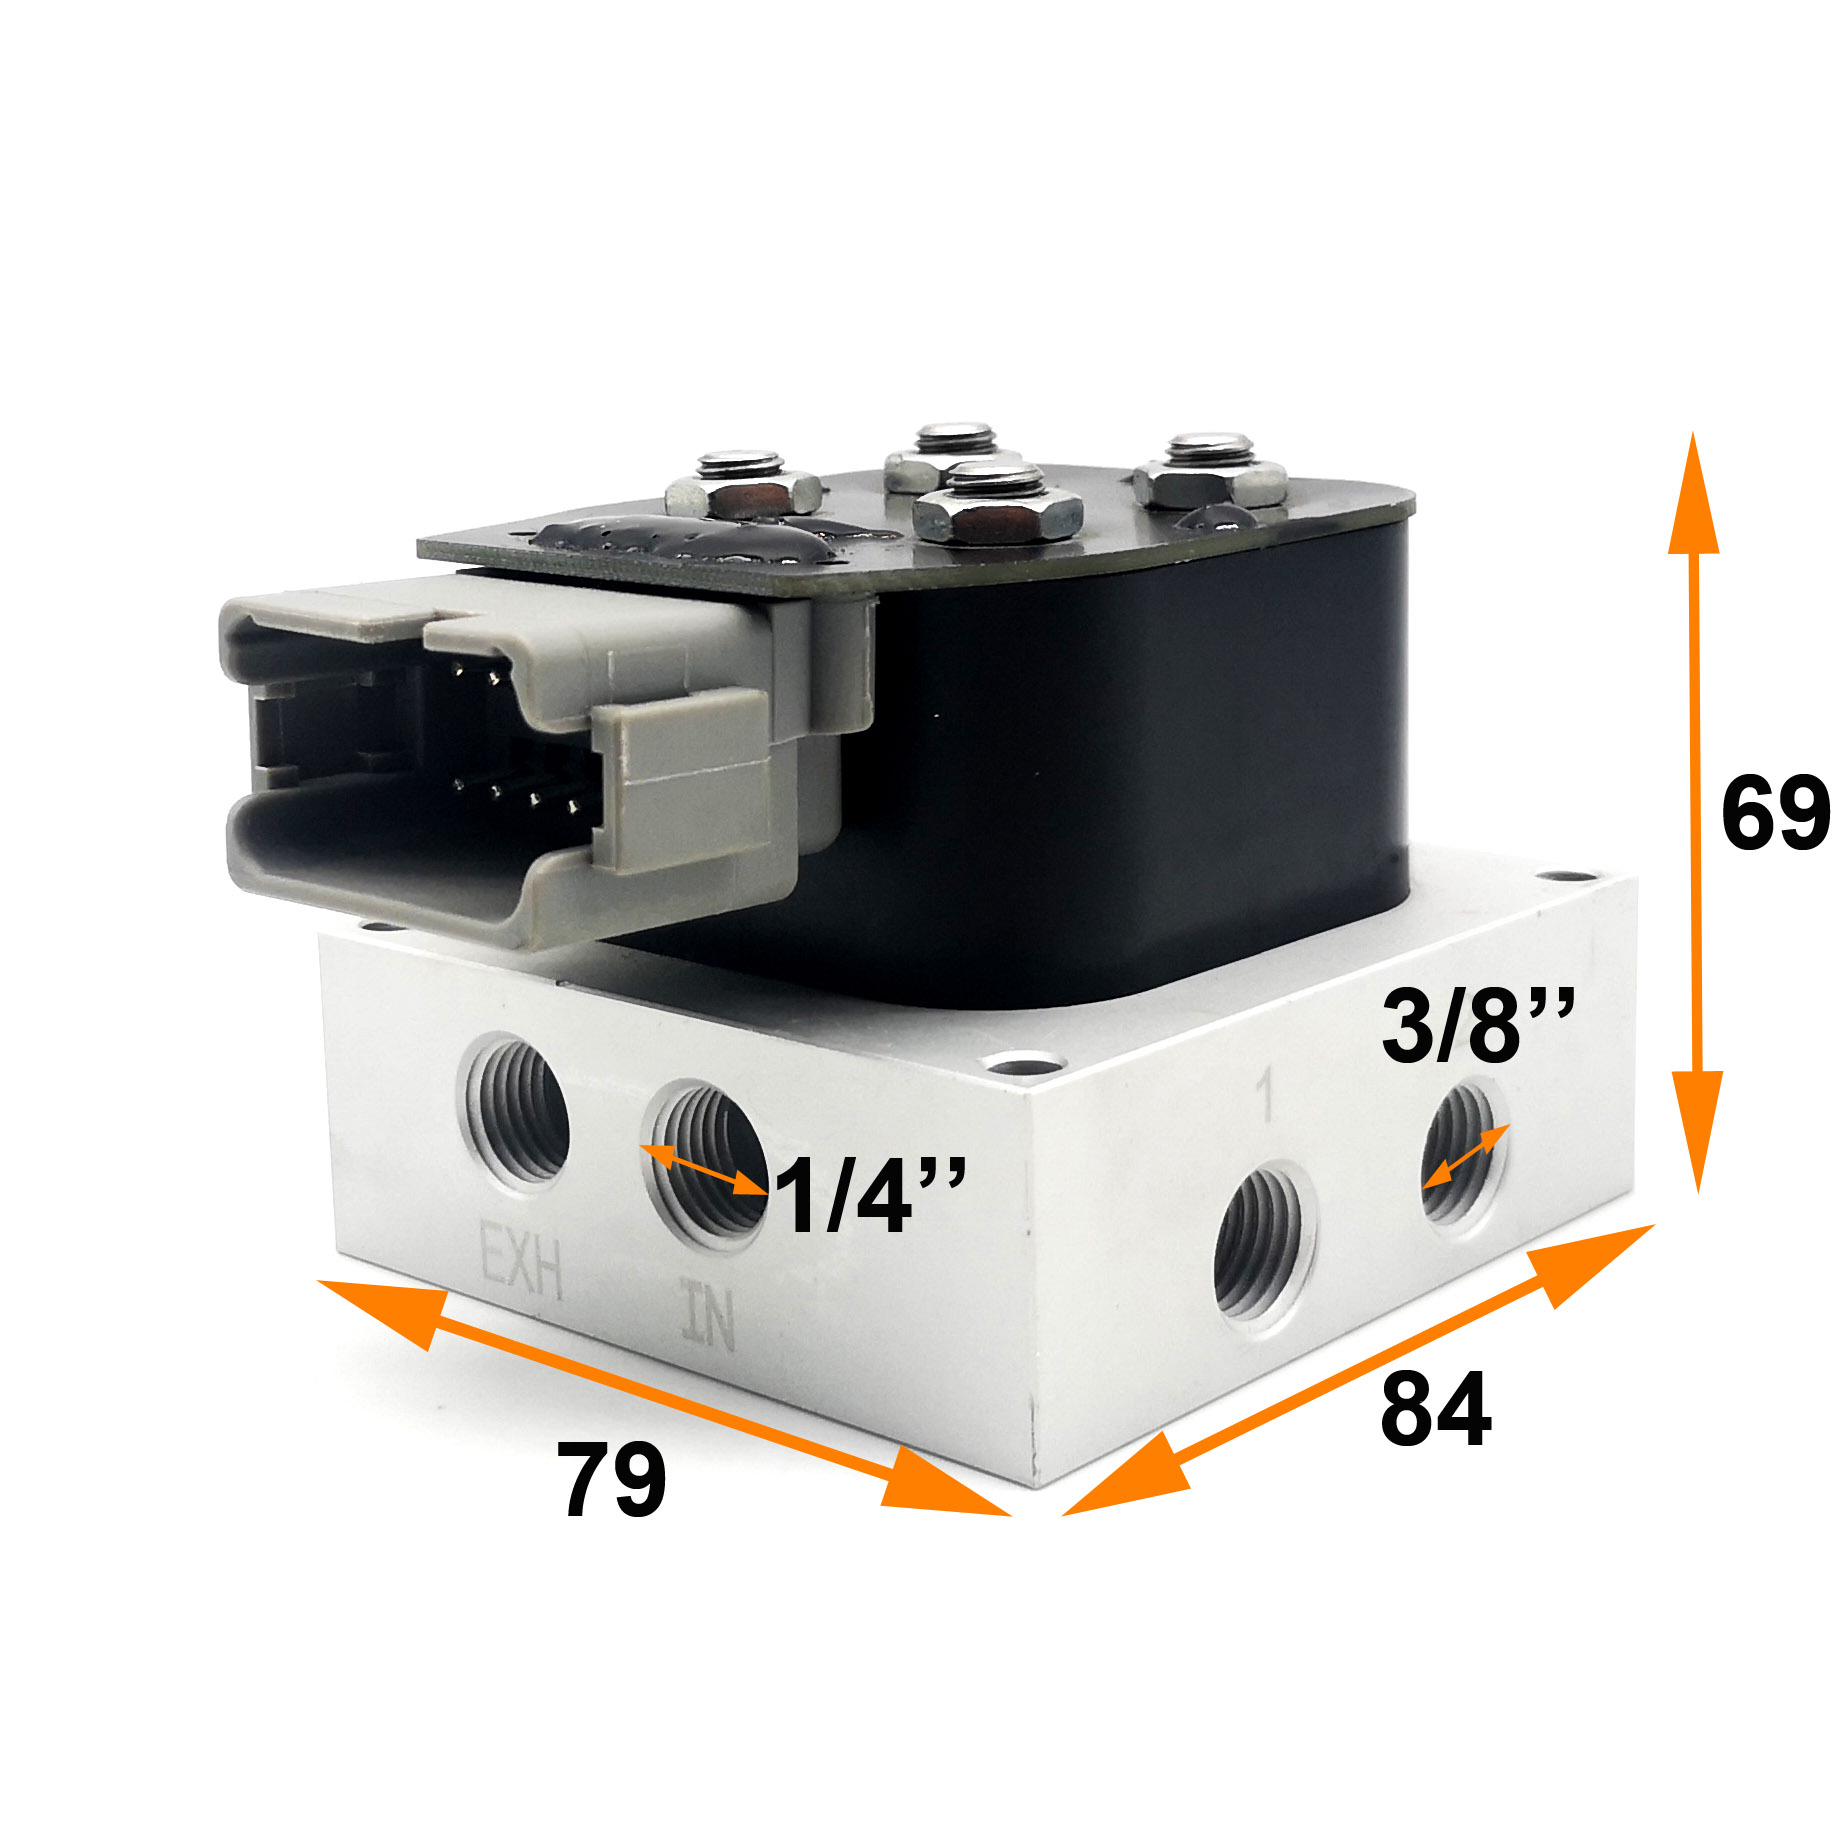 VU2 Full Air Suspension Solenoid Valve Block